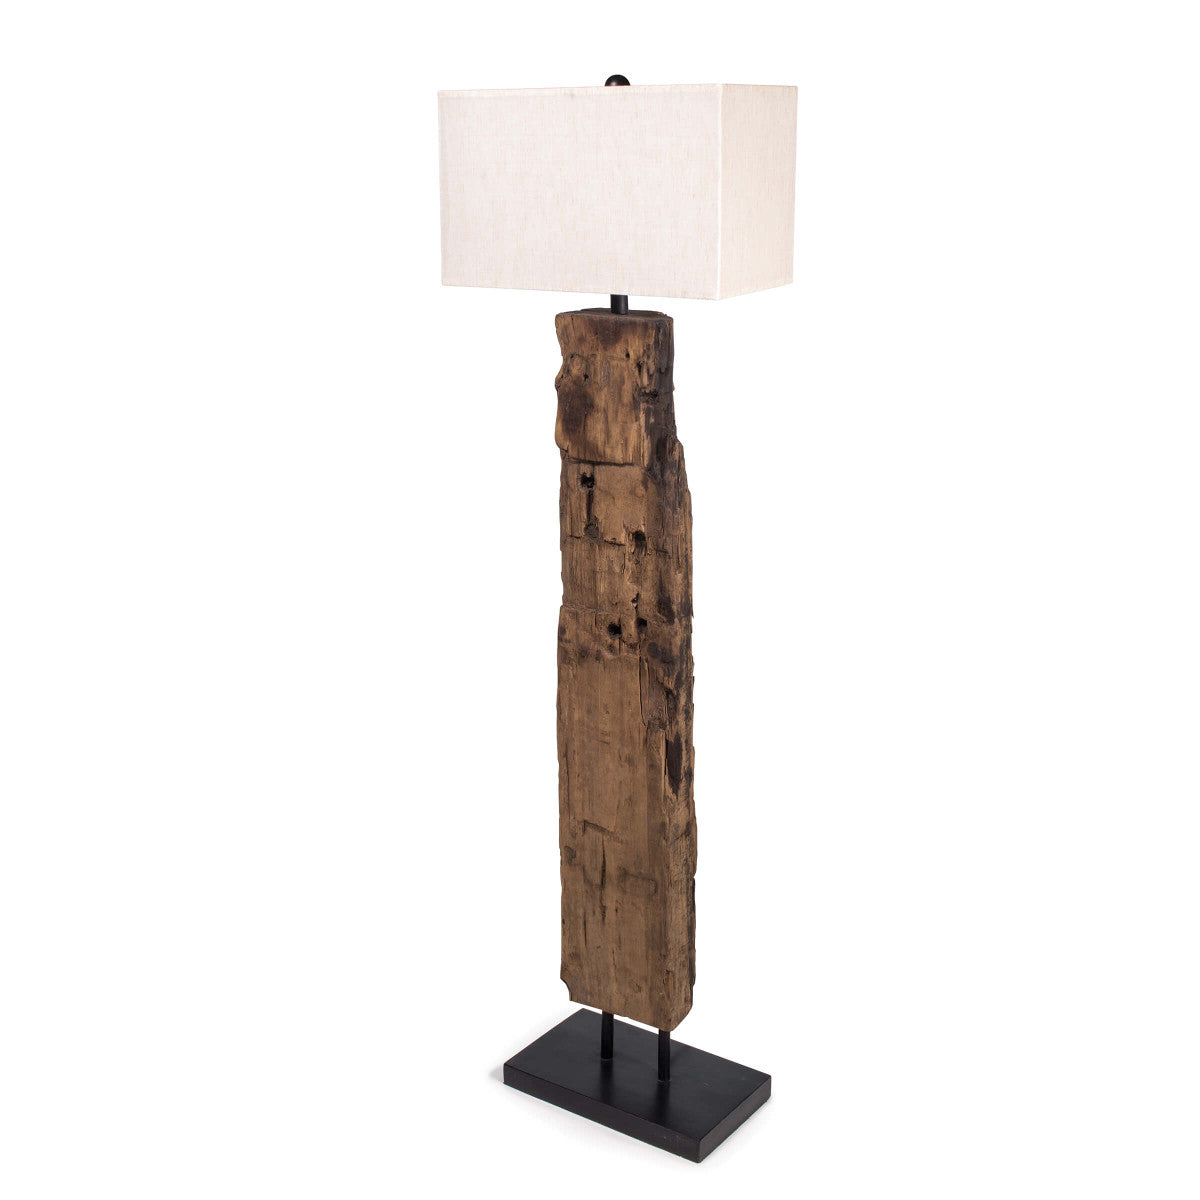 Reclaimed Wood Floor Lamp design by Regina Andrew